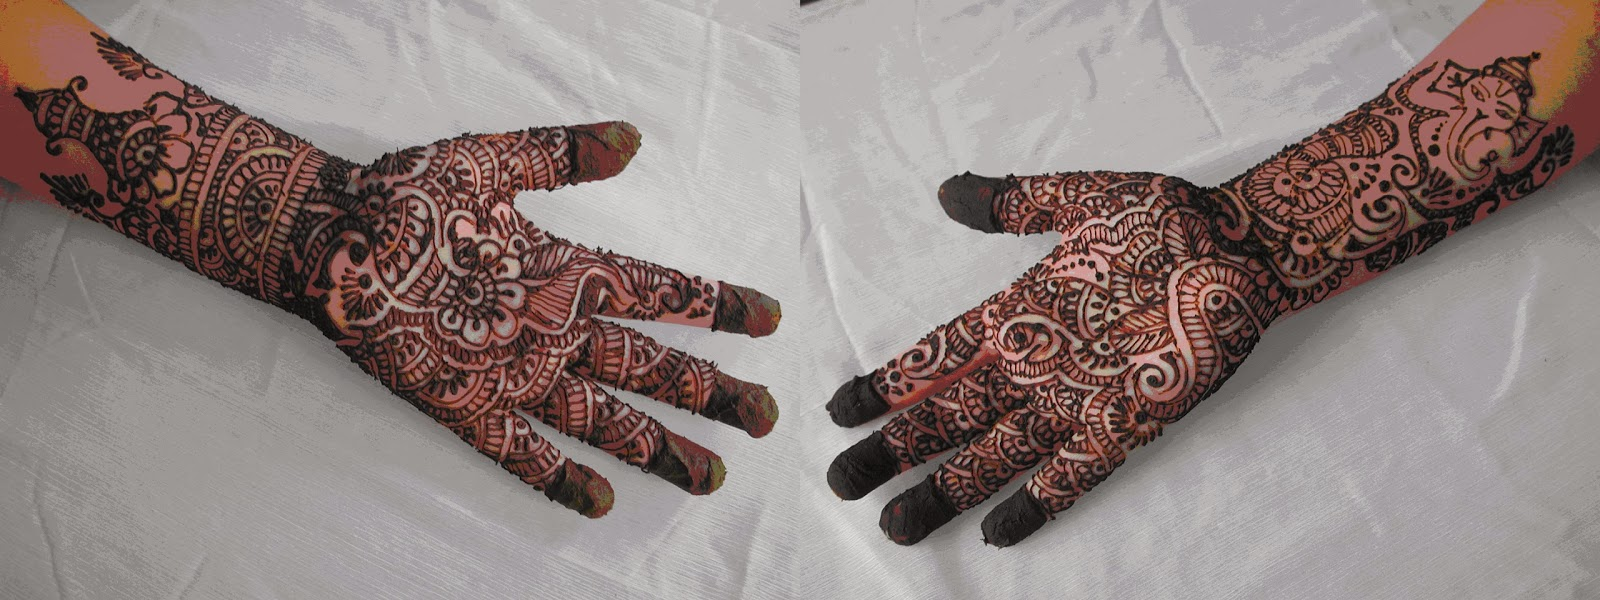 Mehndi henna designs on paper